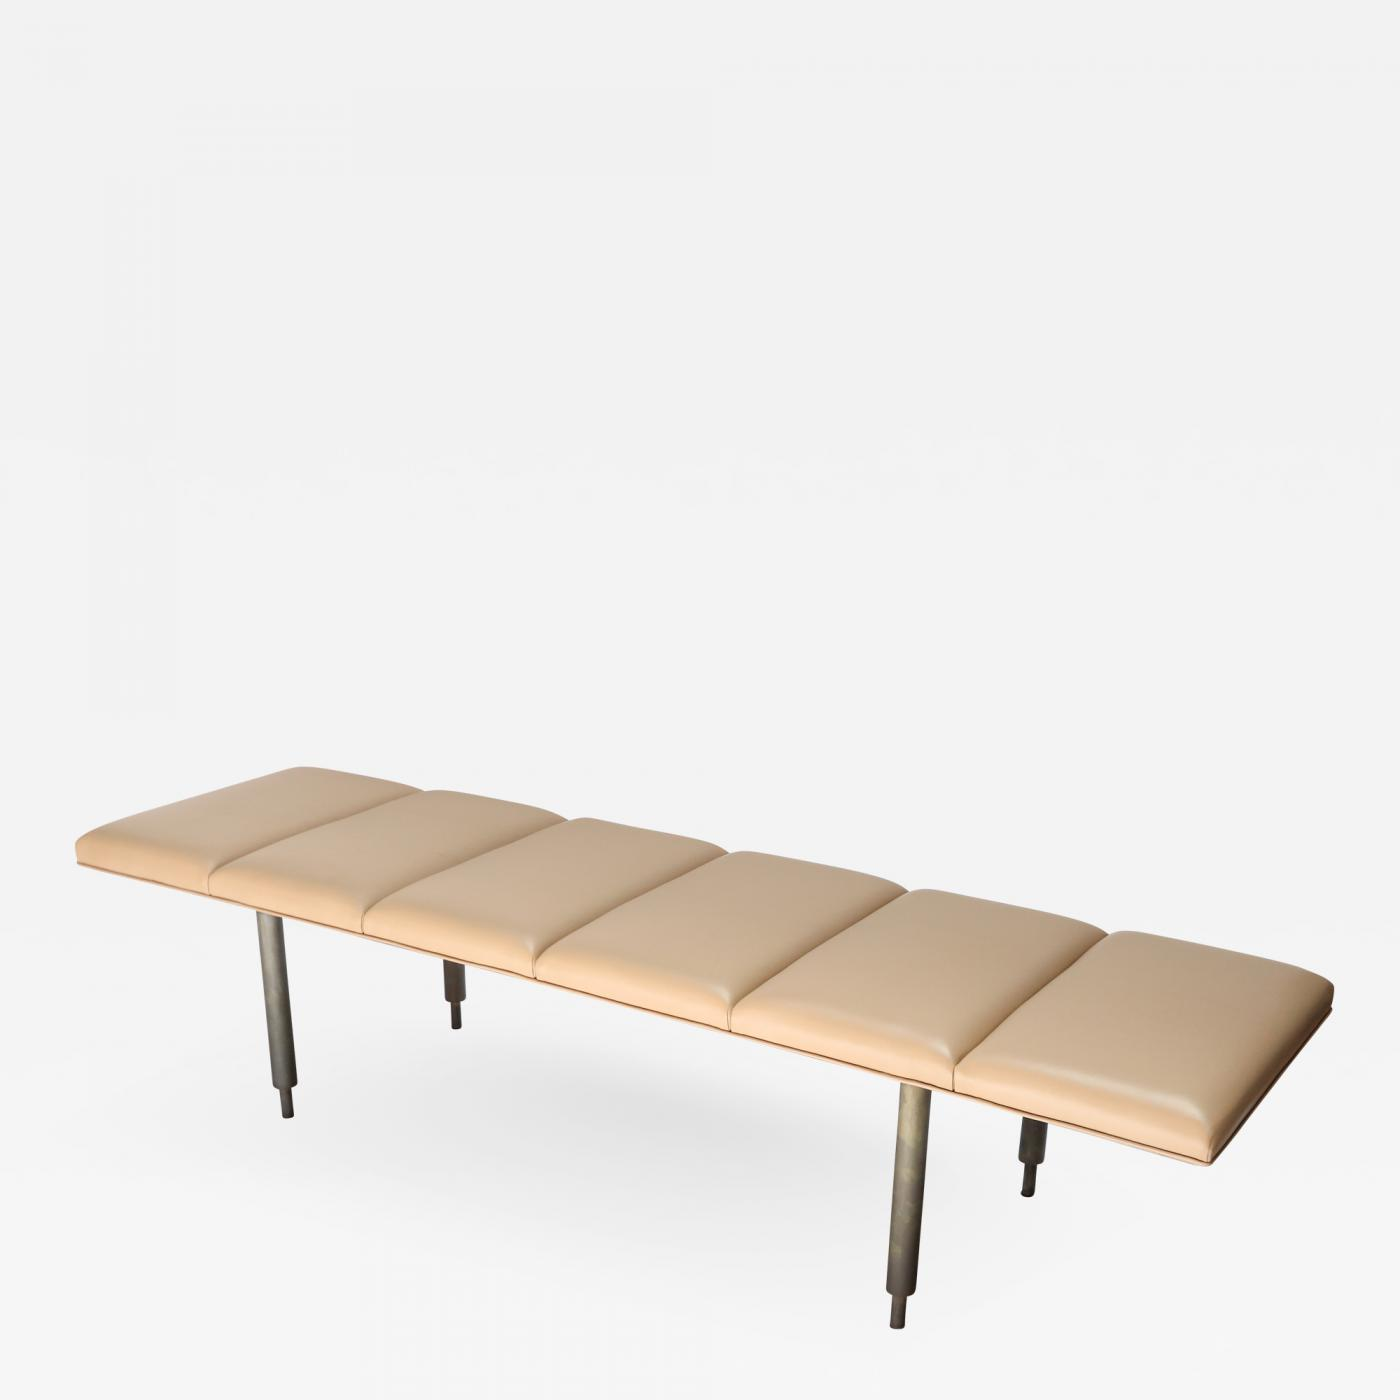 Adesso Studio Custom Milano Metal Bench With Leather Seat